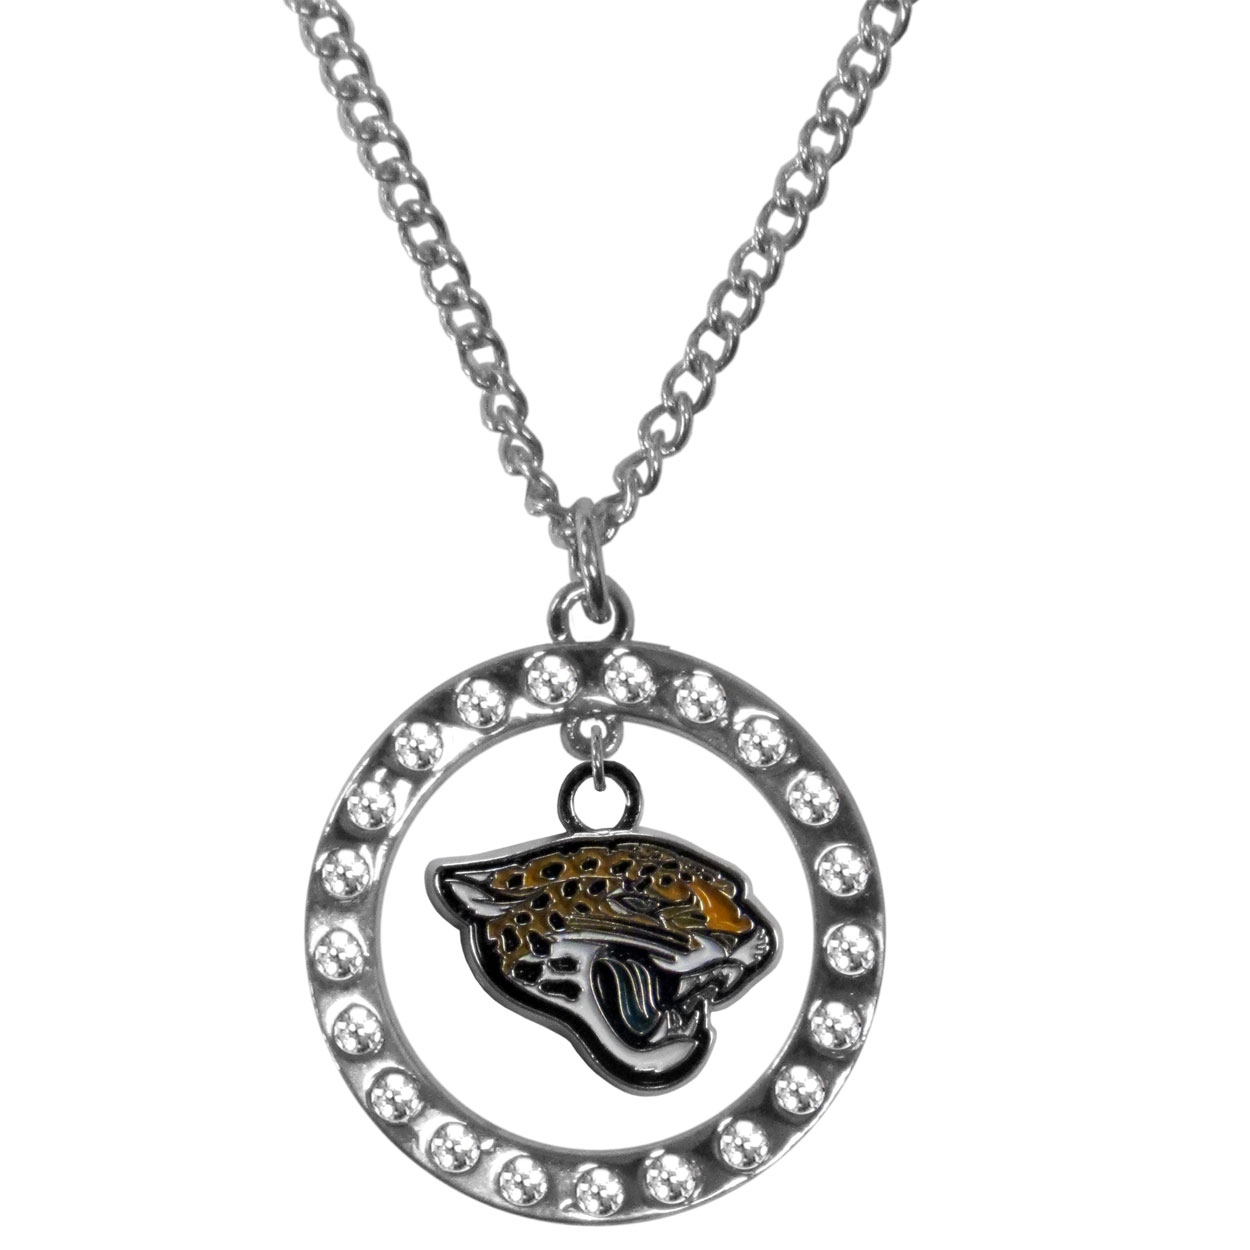 Jacksonville Jaguars Rhinestone Hoop Necklaces - Our Jacksonville Jaguars rhinestone hoop necklace comes on an 18 inch chain and features a hoop covered in rhinestones with a high polish chrome finish and a cast and enameled team charm dangling in the center.